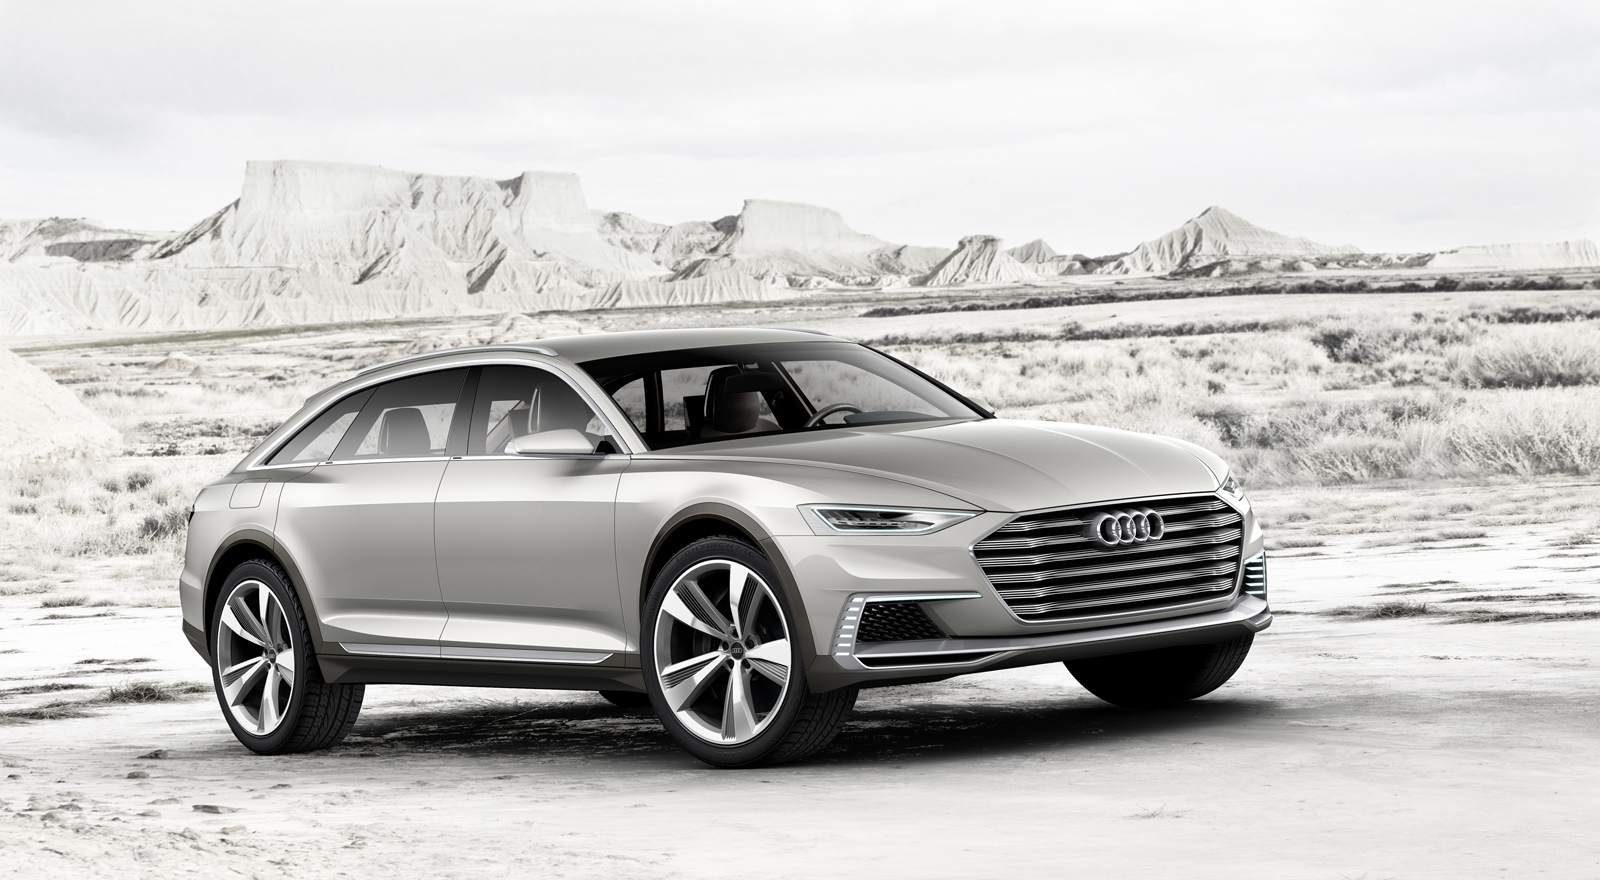 2019 Audi Allroad quattro Concept photo - 1